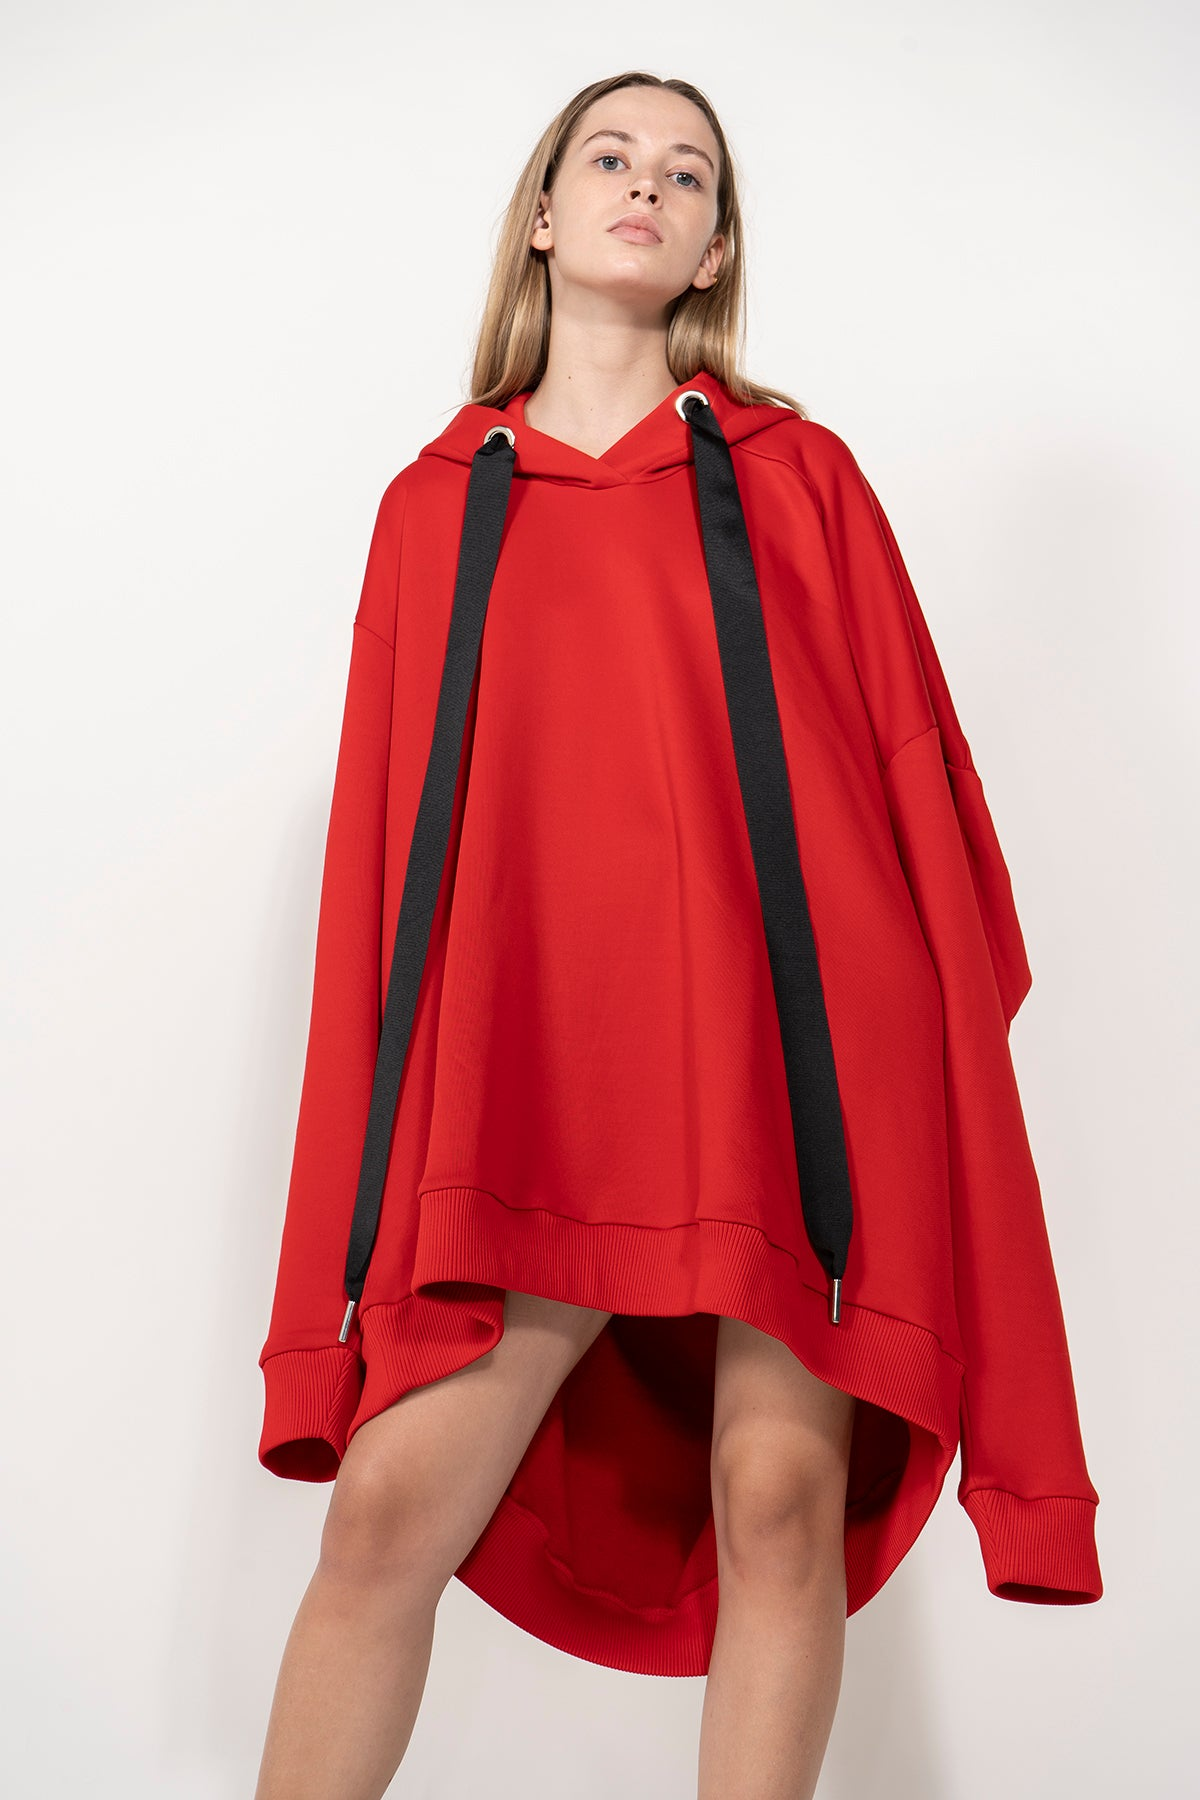 RED OVERSIZED ASYMMETRIC HOODIE marques-almeida